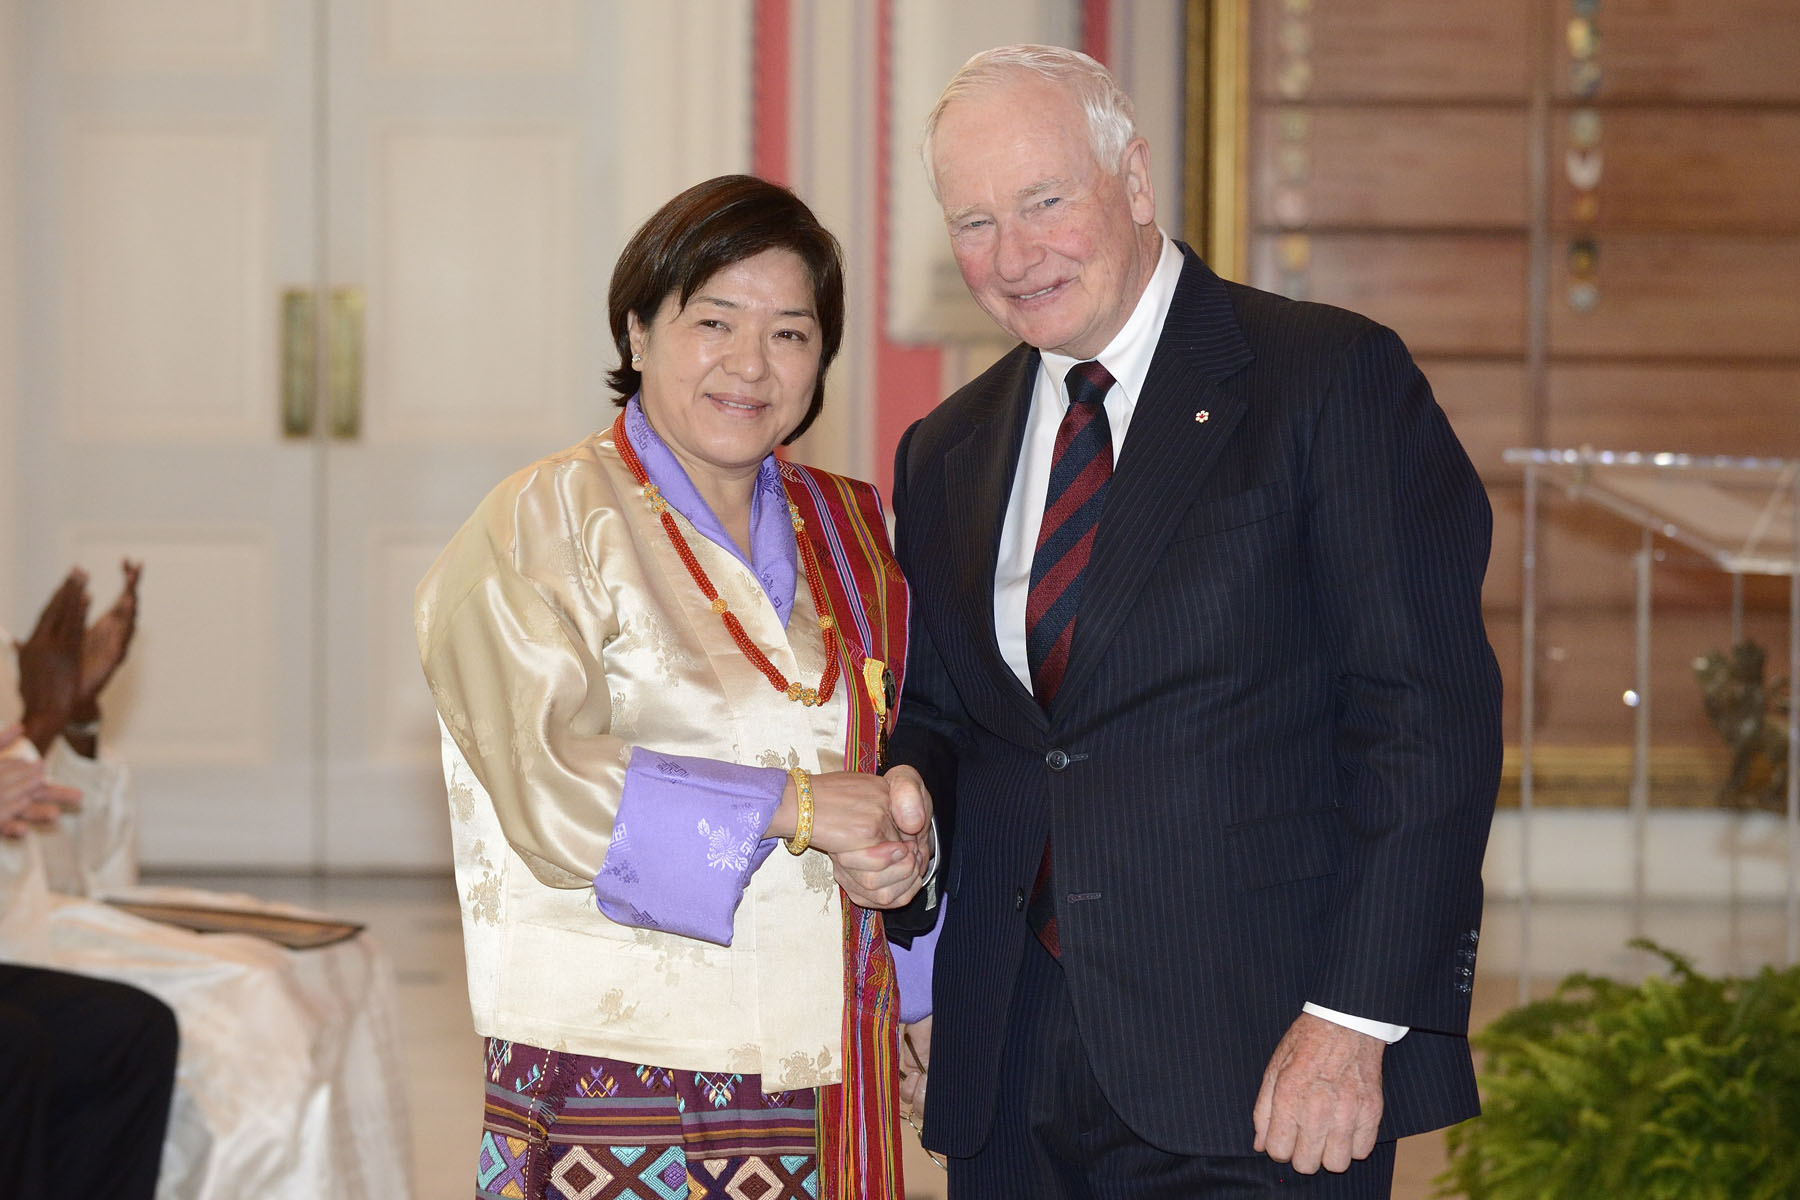 Her Excellency Kunzang C. Namgyel, Ambassador of the Kingdom of Bhutan, also presented her letters of credence.